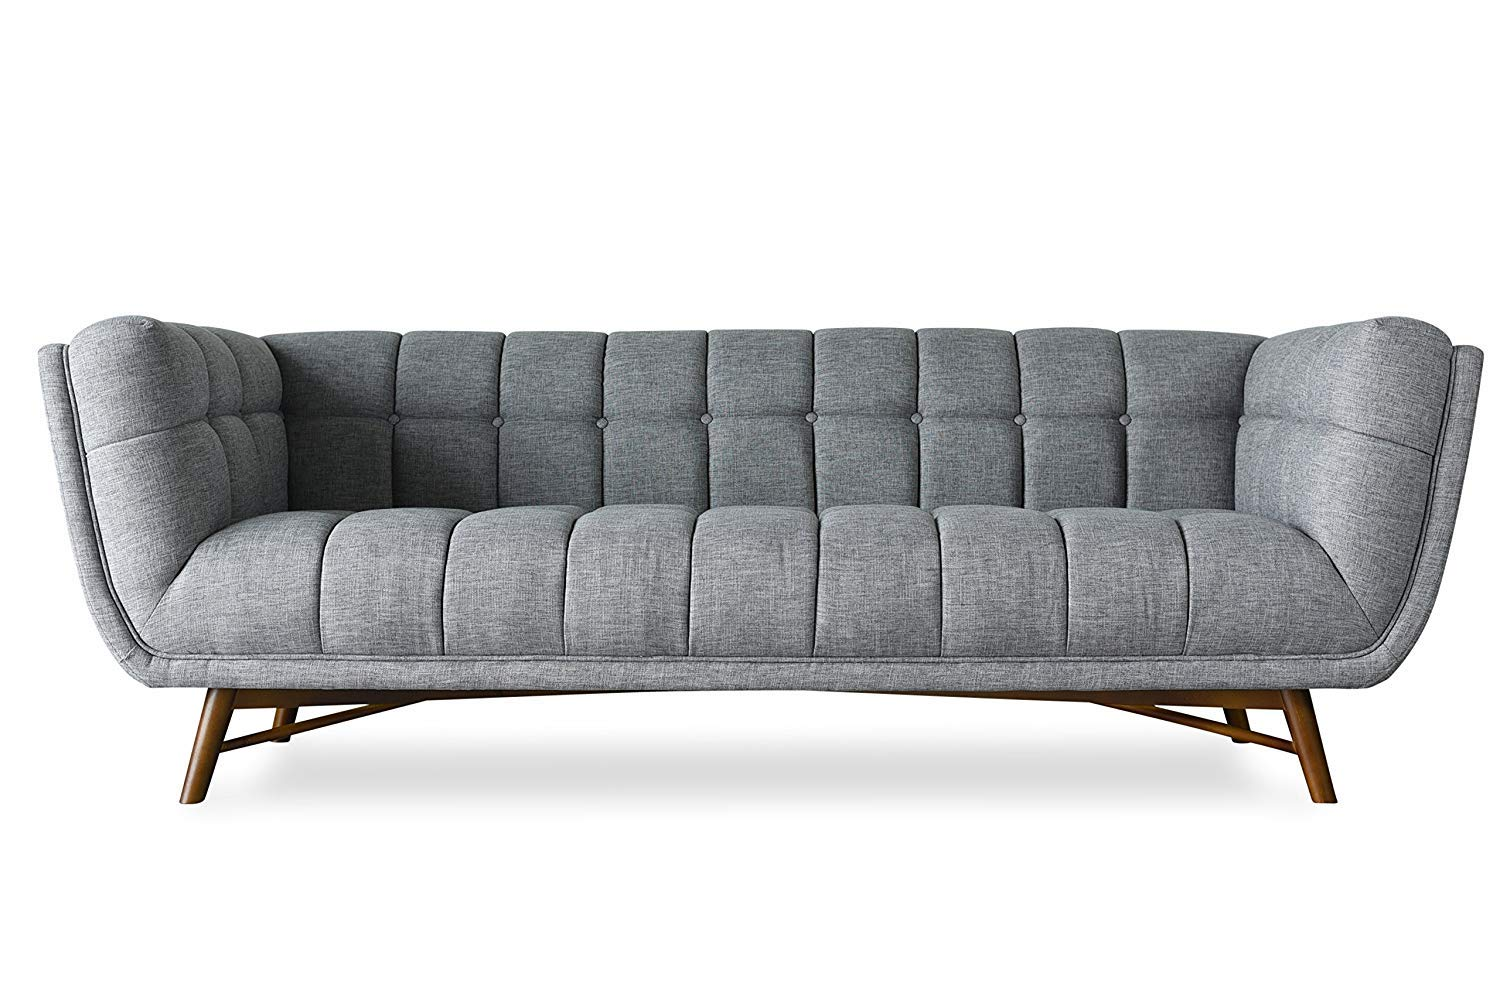 Edloe Finch Lofton Mid-Century Modern Sofa, Grey by Edloe Finch